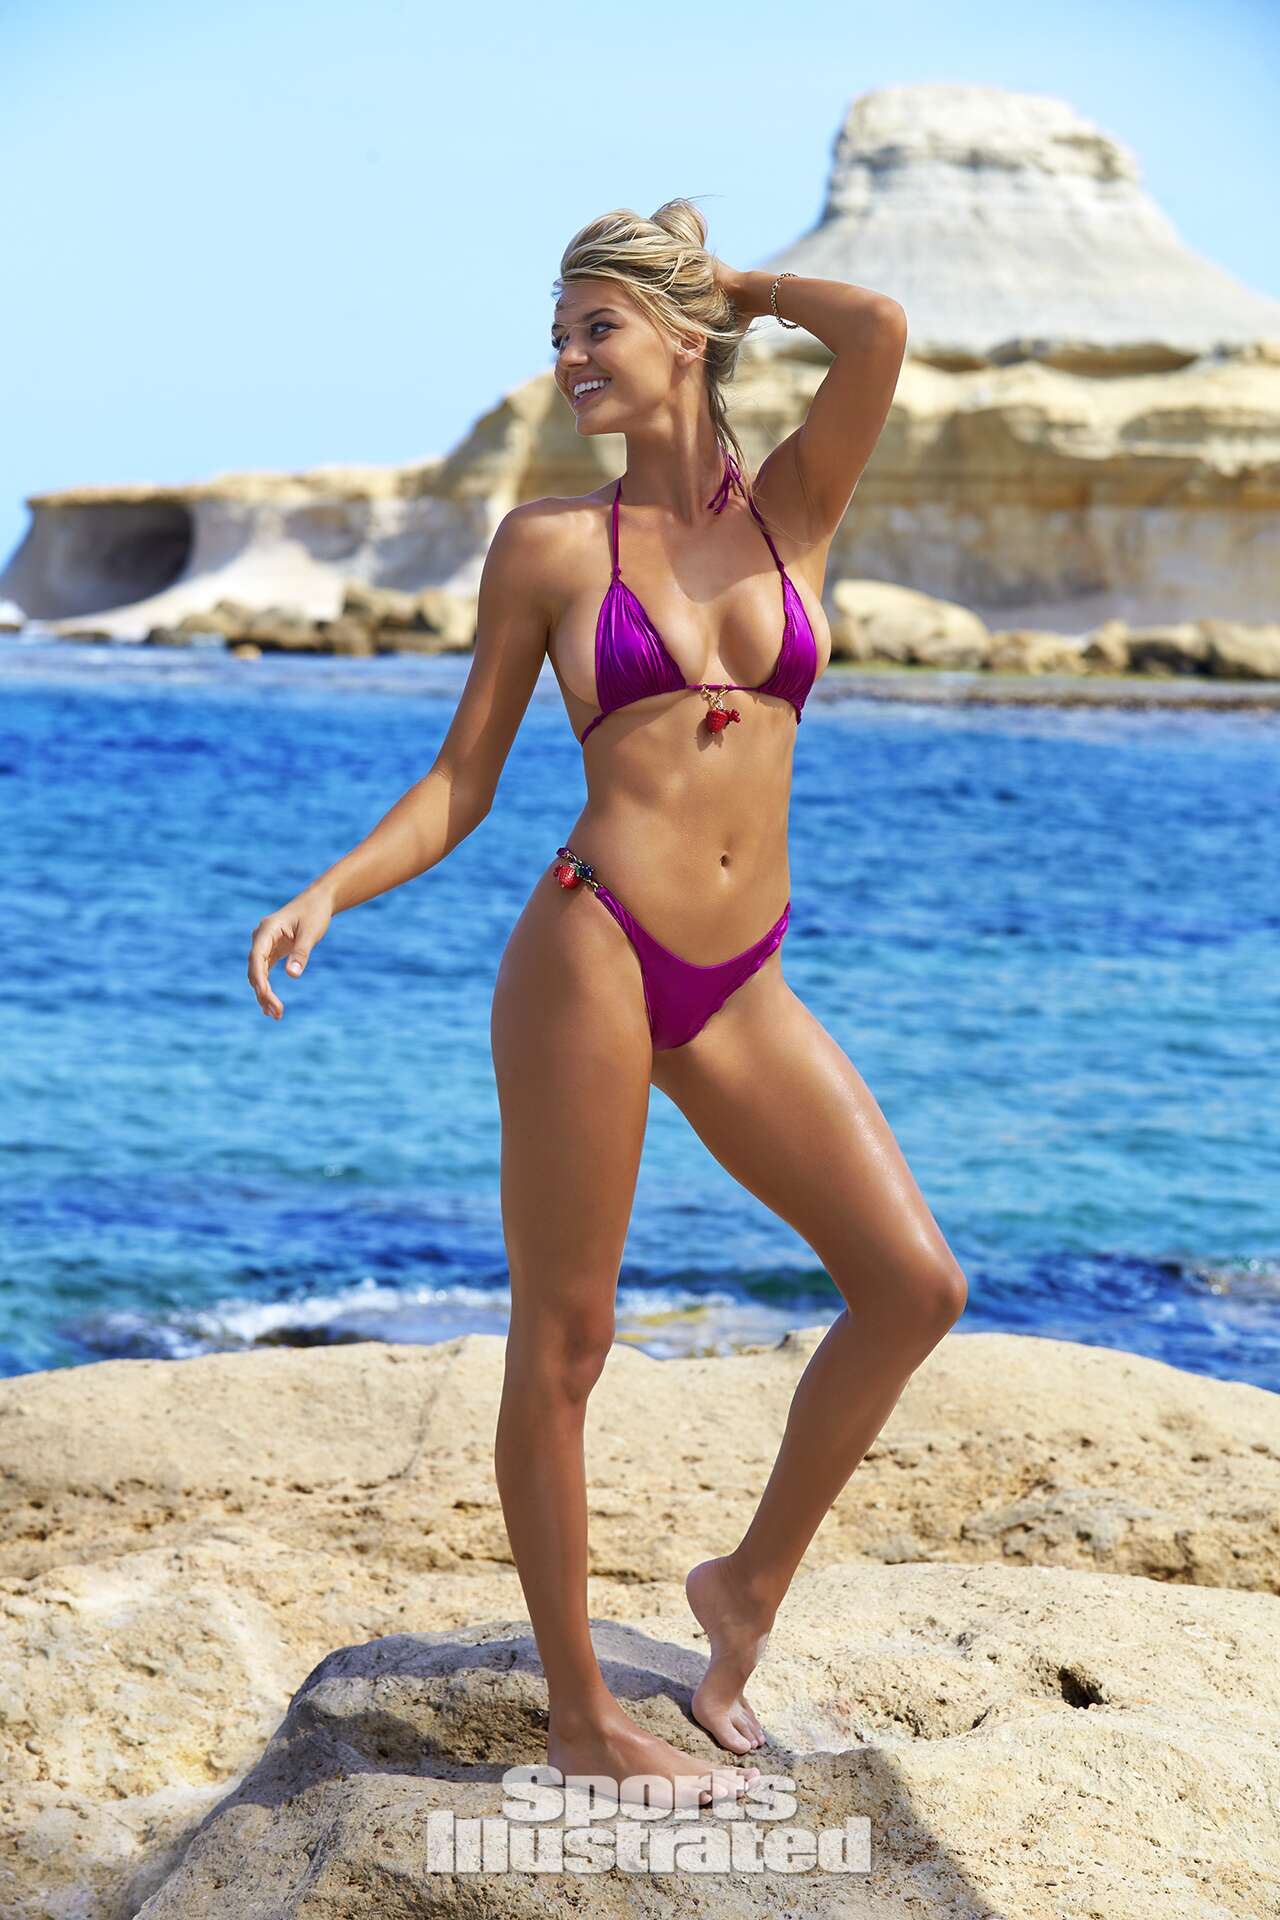 Kelly Rohrbach was photographed by Ben Watts in Malta. Swimsuit by Agent Provocateur.